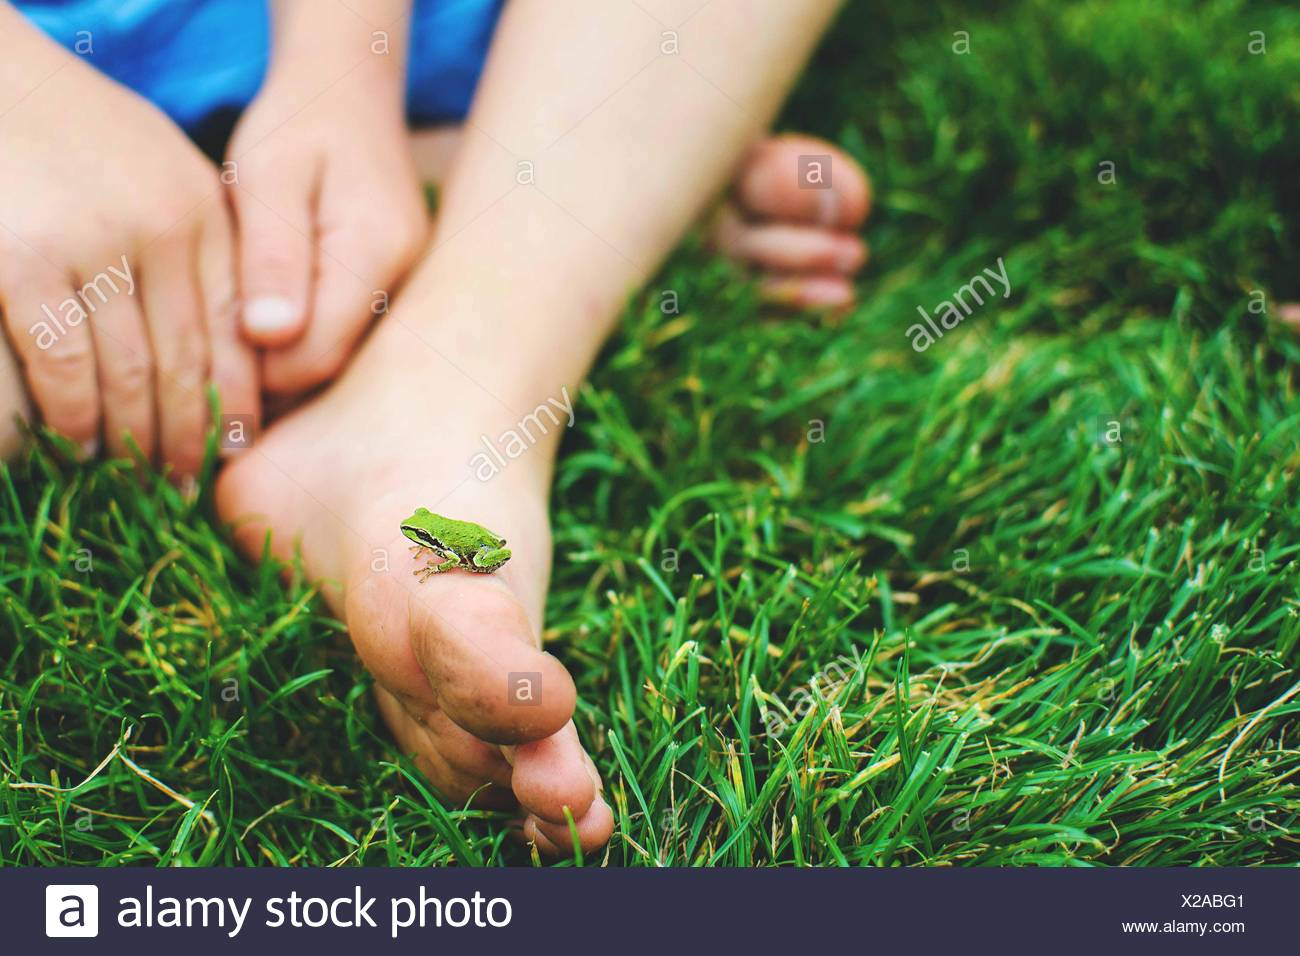 Small frog on child's (4-5) foot - Stock Image